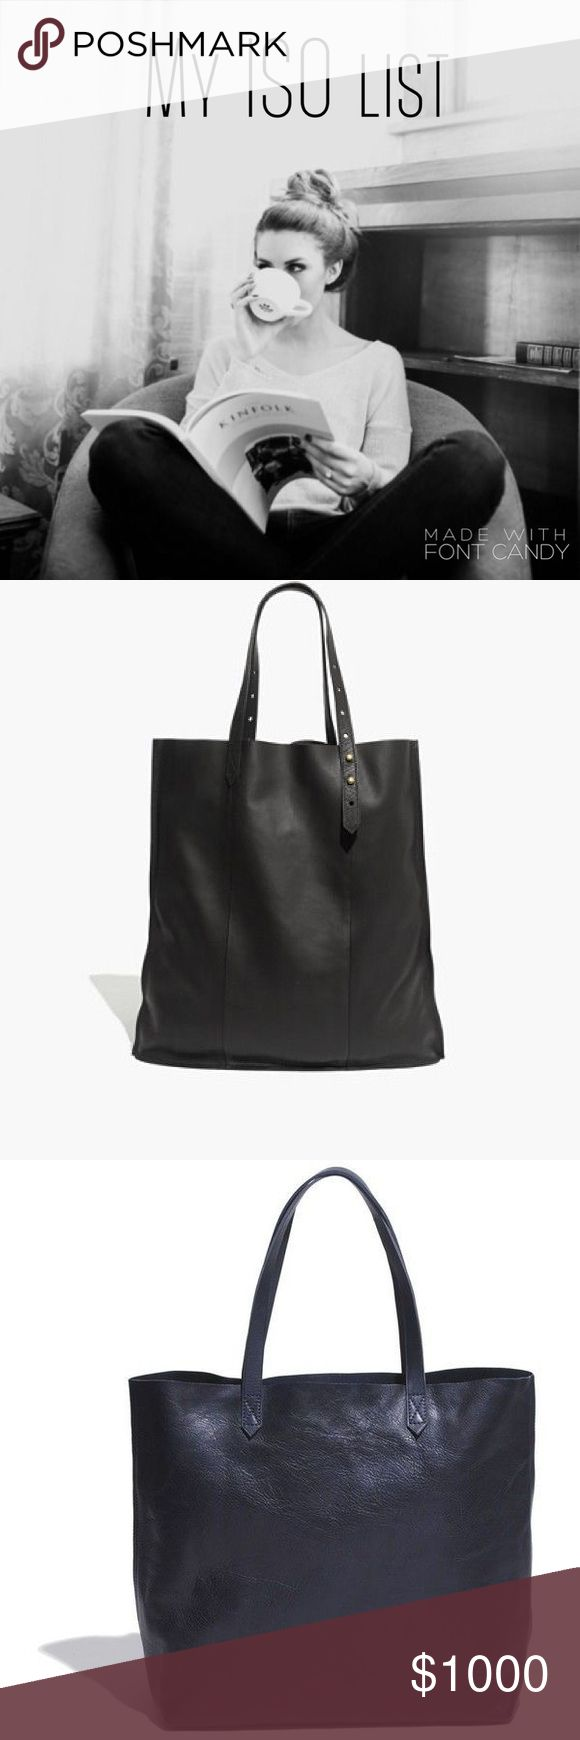 My In Search Of list Hi all! 👋🏻 Just a few things I'm looking for, the Madewell transport tote in navy, black or olive; the Madewell McCarren tote in black; the Madewell embroidered ivy tee in gray, size small; and Nike Tanjun sneakers, size 7.5 in black and white. Betcha can't tell I like Madewell or anything 😂 Thanks, everyone! Feel free to tag me in any listings that match these! Madewell Bags